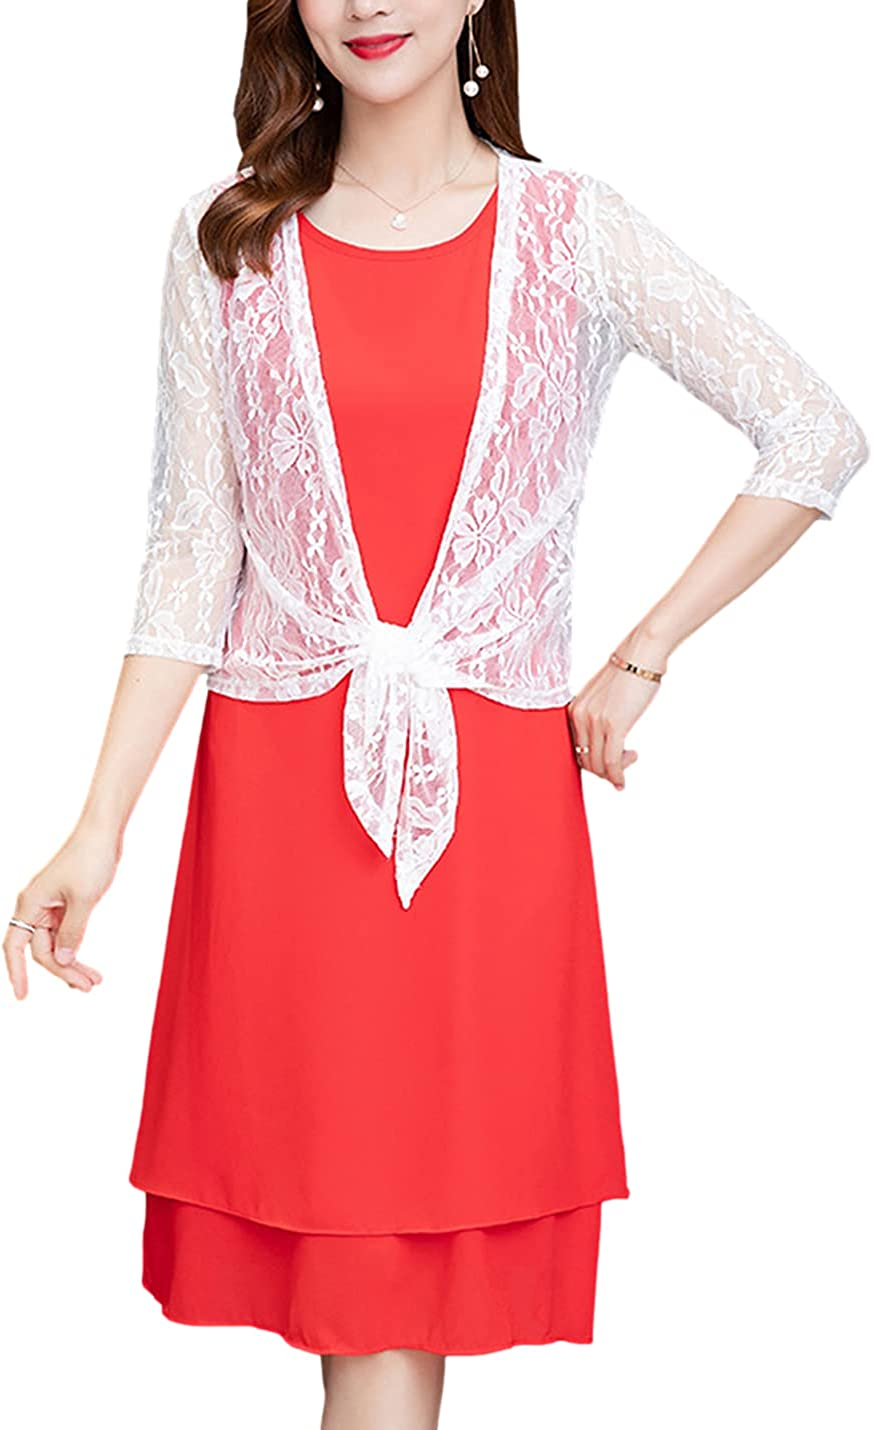 Omoone Womens 3/4 Sleeve Floral Lace Shrug Casual Loose Open Front Bolero Cardigan